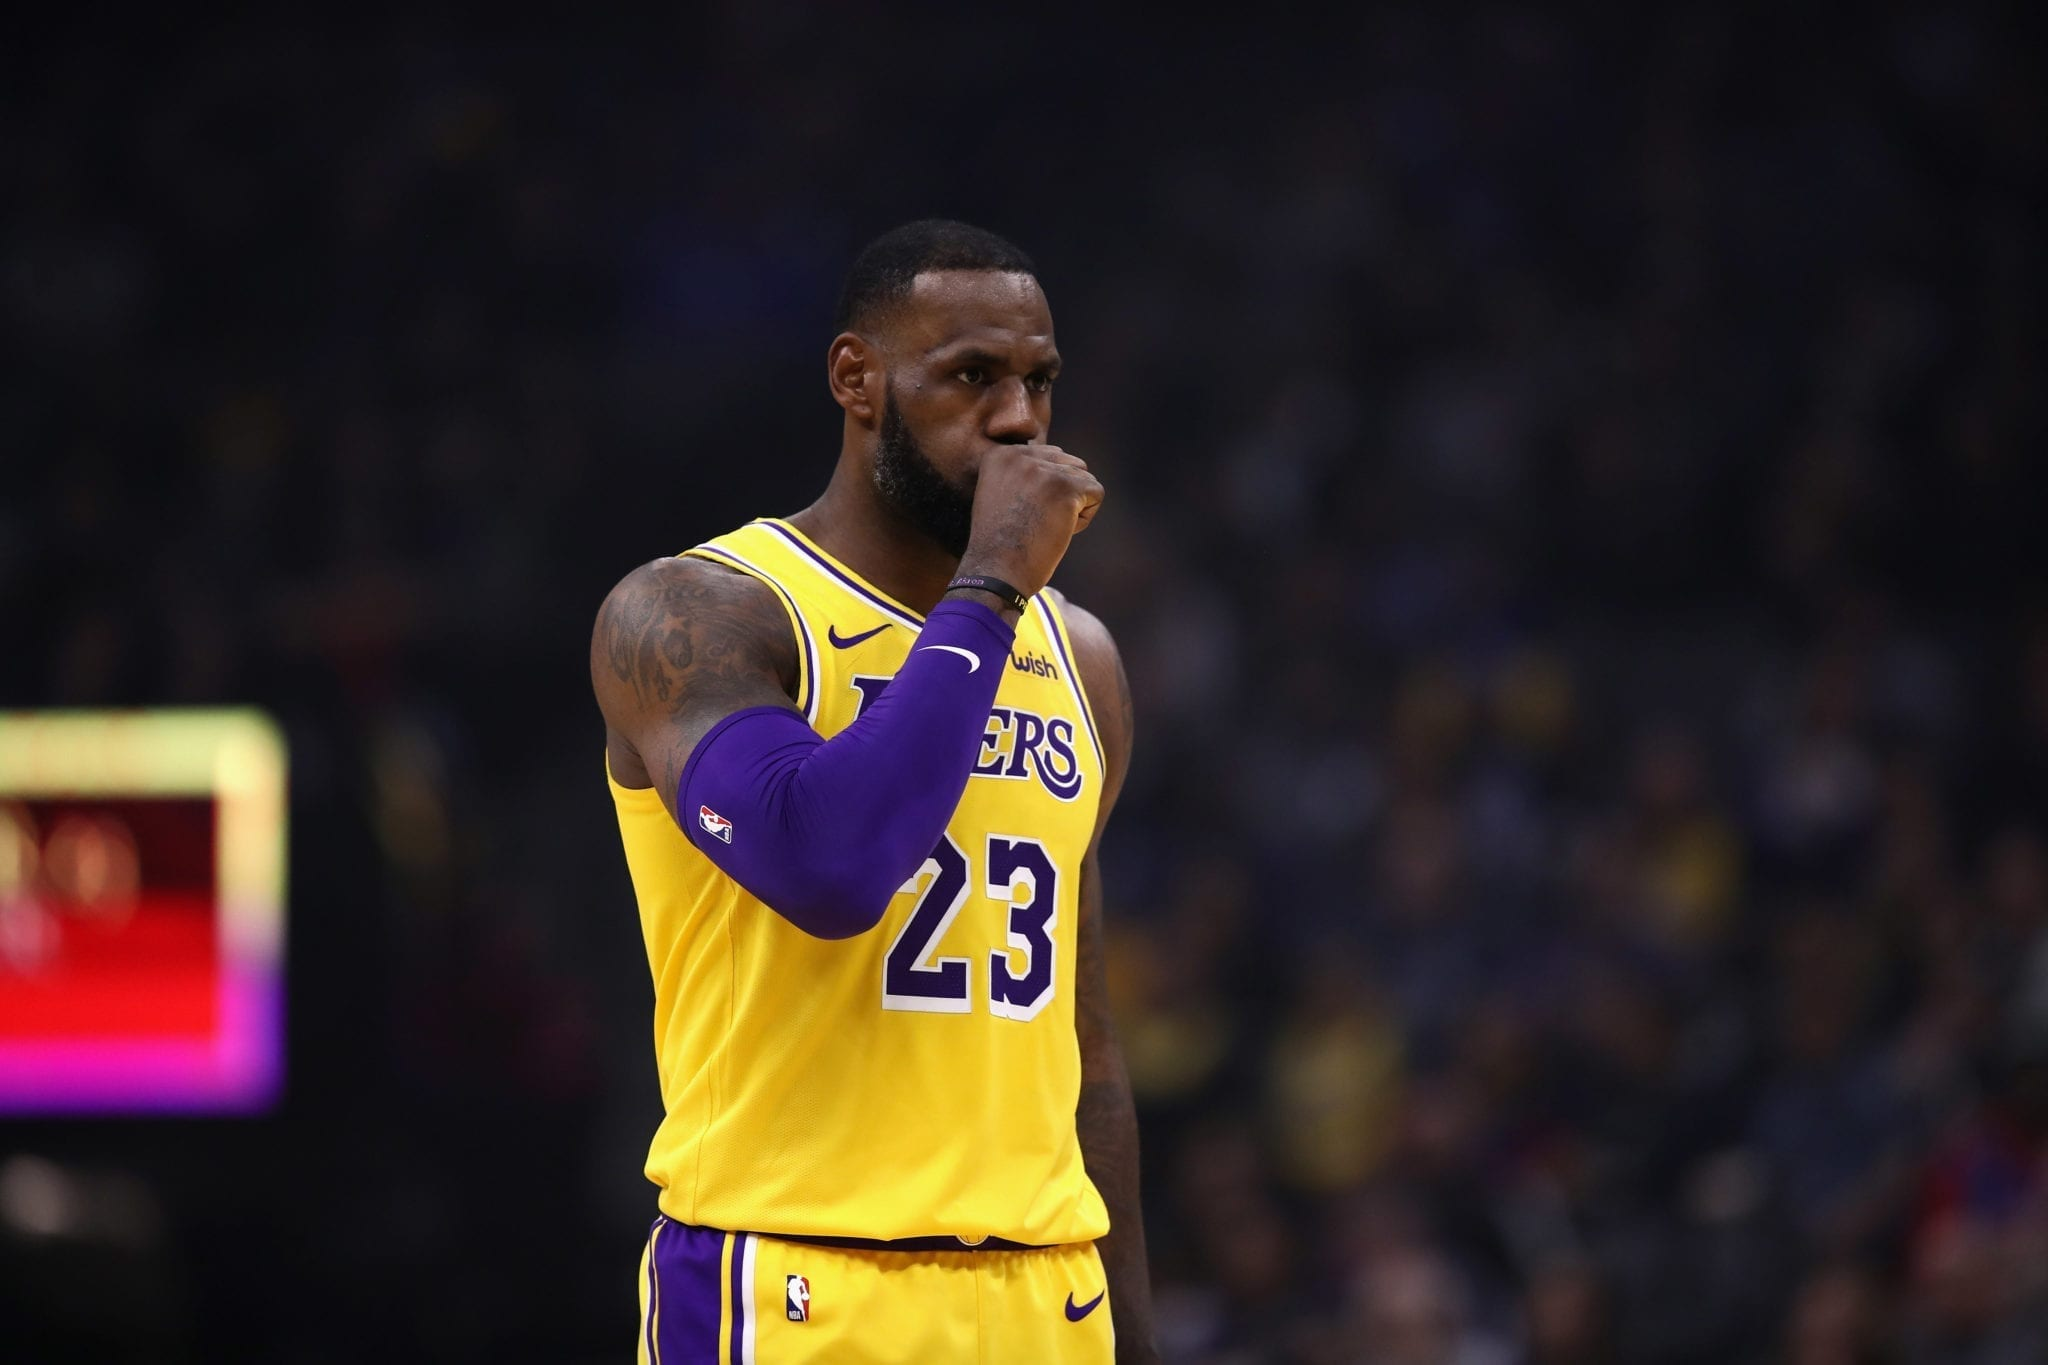 SACRAMENTO, CA - NOVEMBER 10: LeBron James #23 of the Los Angeles Lakers stands on the court during their game against the Sacramento Kings at Golden 1 Center on November 10, 2018 in Sacramento, California. NOTE TO USER: User expressly acknowledges and agrees that, by downloading and or using this photograph, User is consenting to the terms and conditions of the Getty Images License Agreement. (Photo by Ezra Shaw/Getty Images)